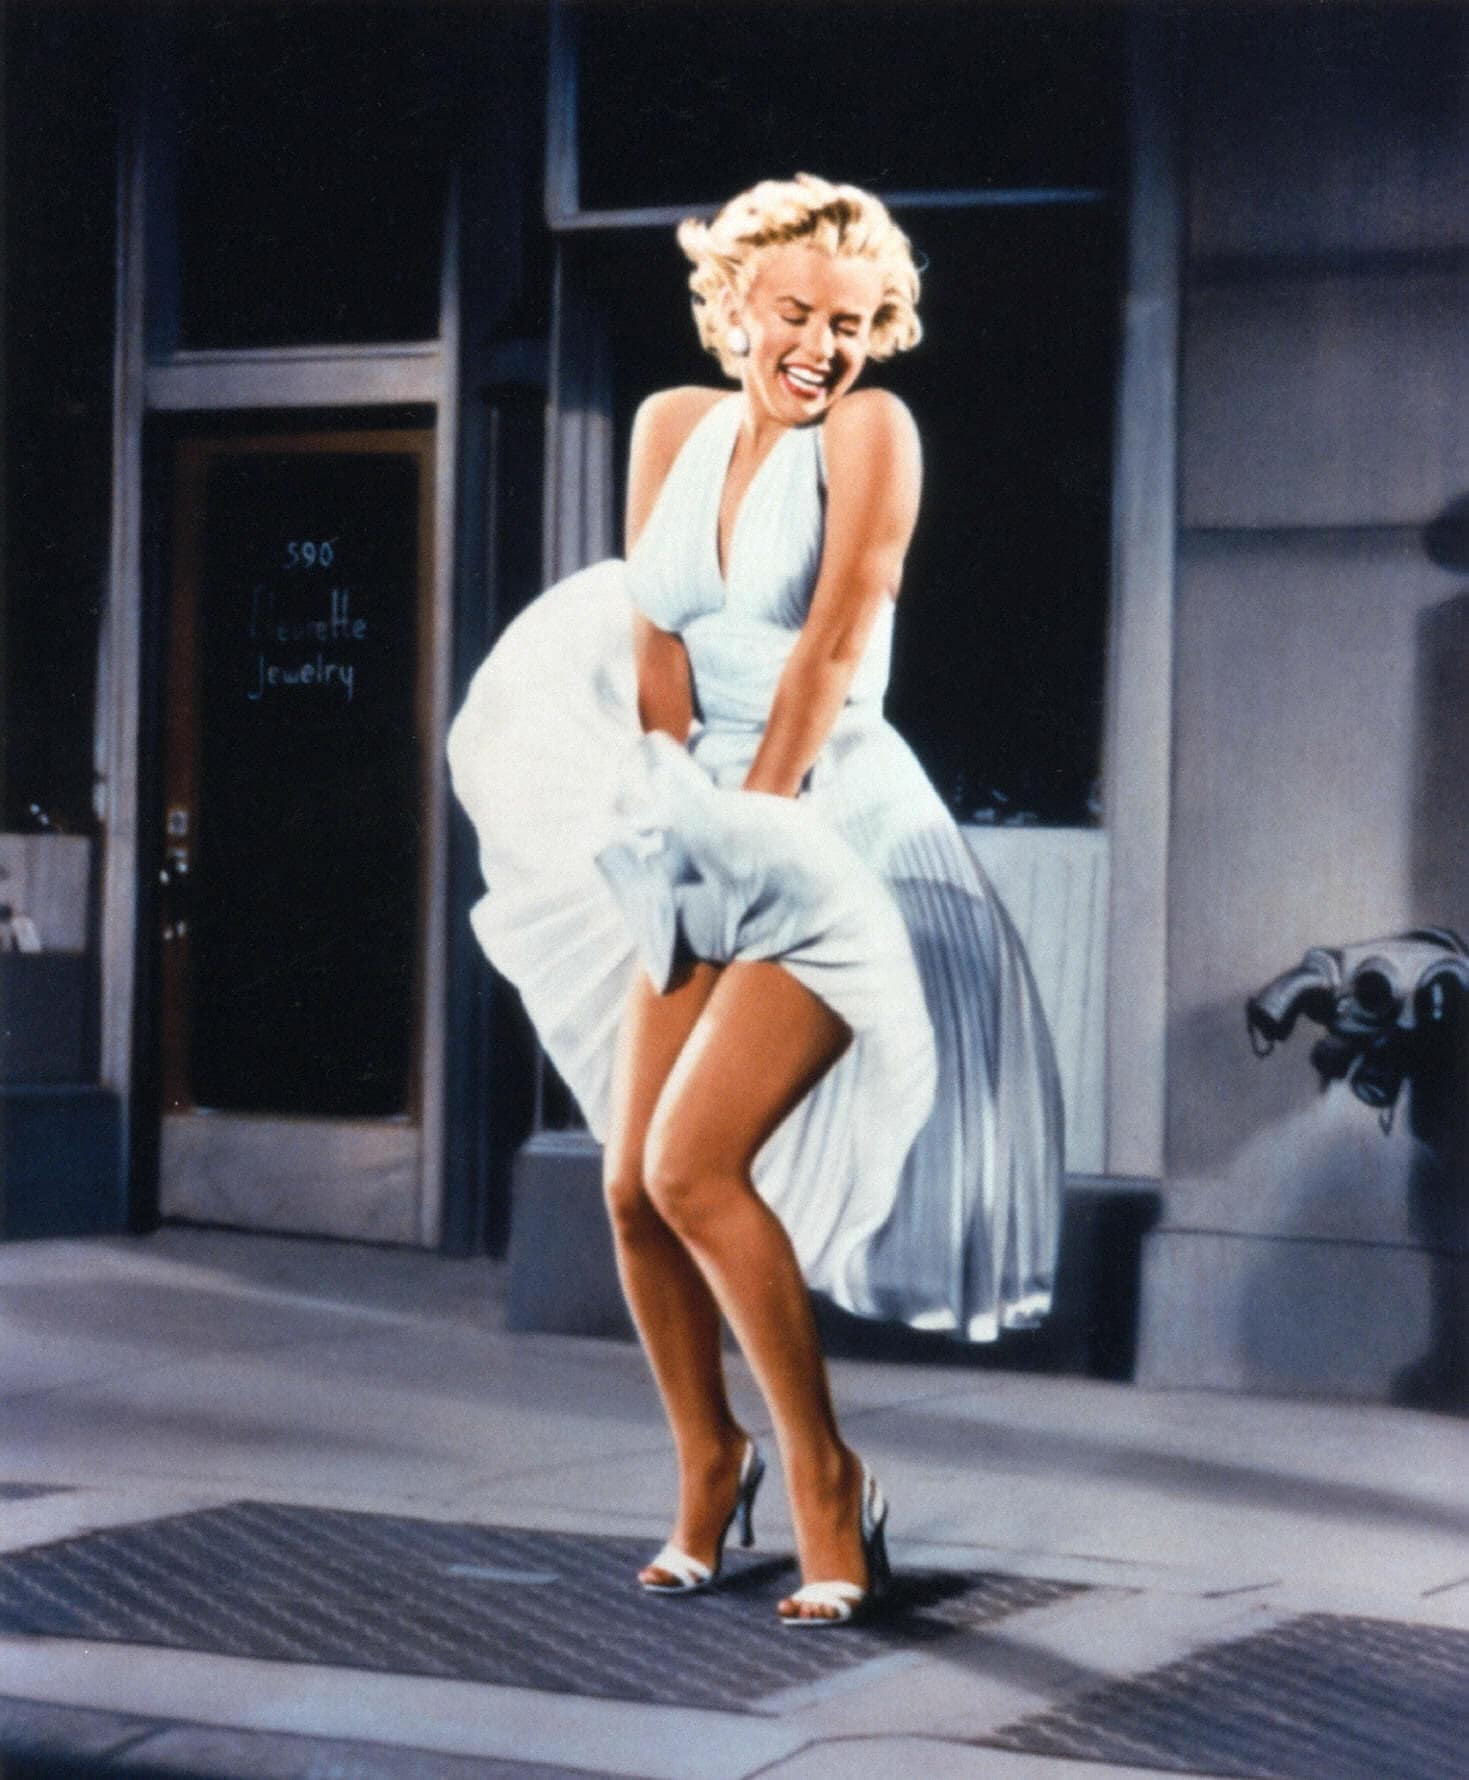 1559118280426_The Seven-Year Itch.jpg - Indimenticabile Marilyn in Quando la moglie è in vacanza 1955